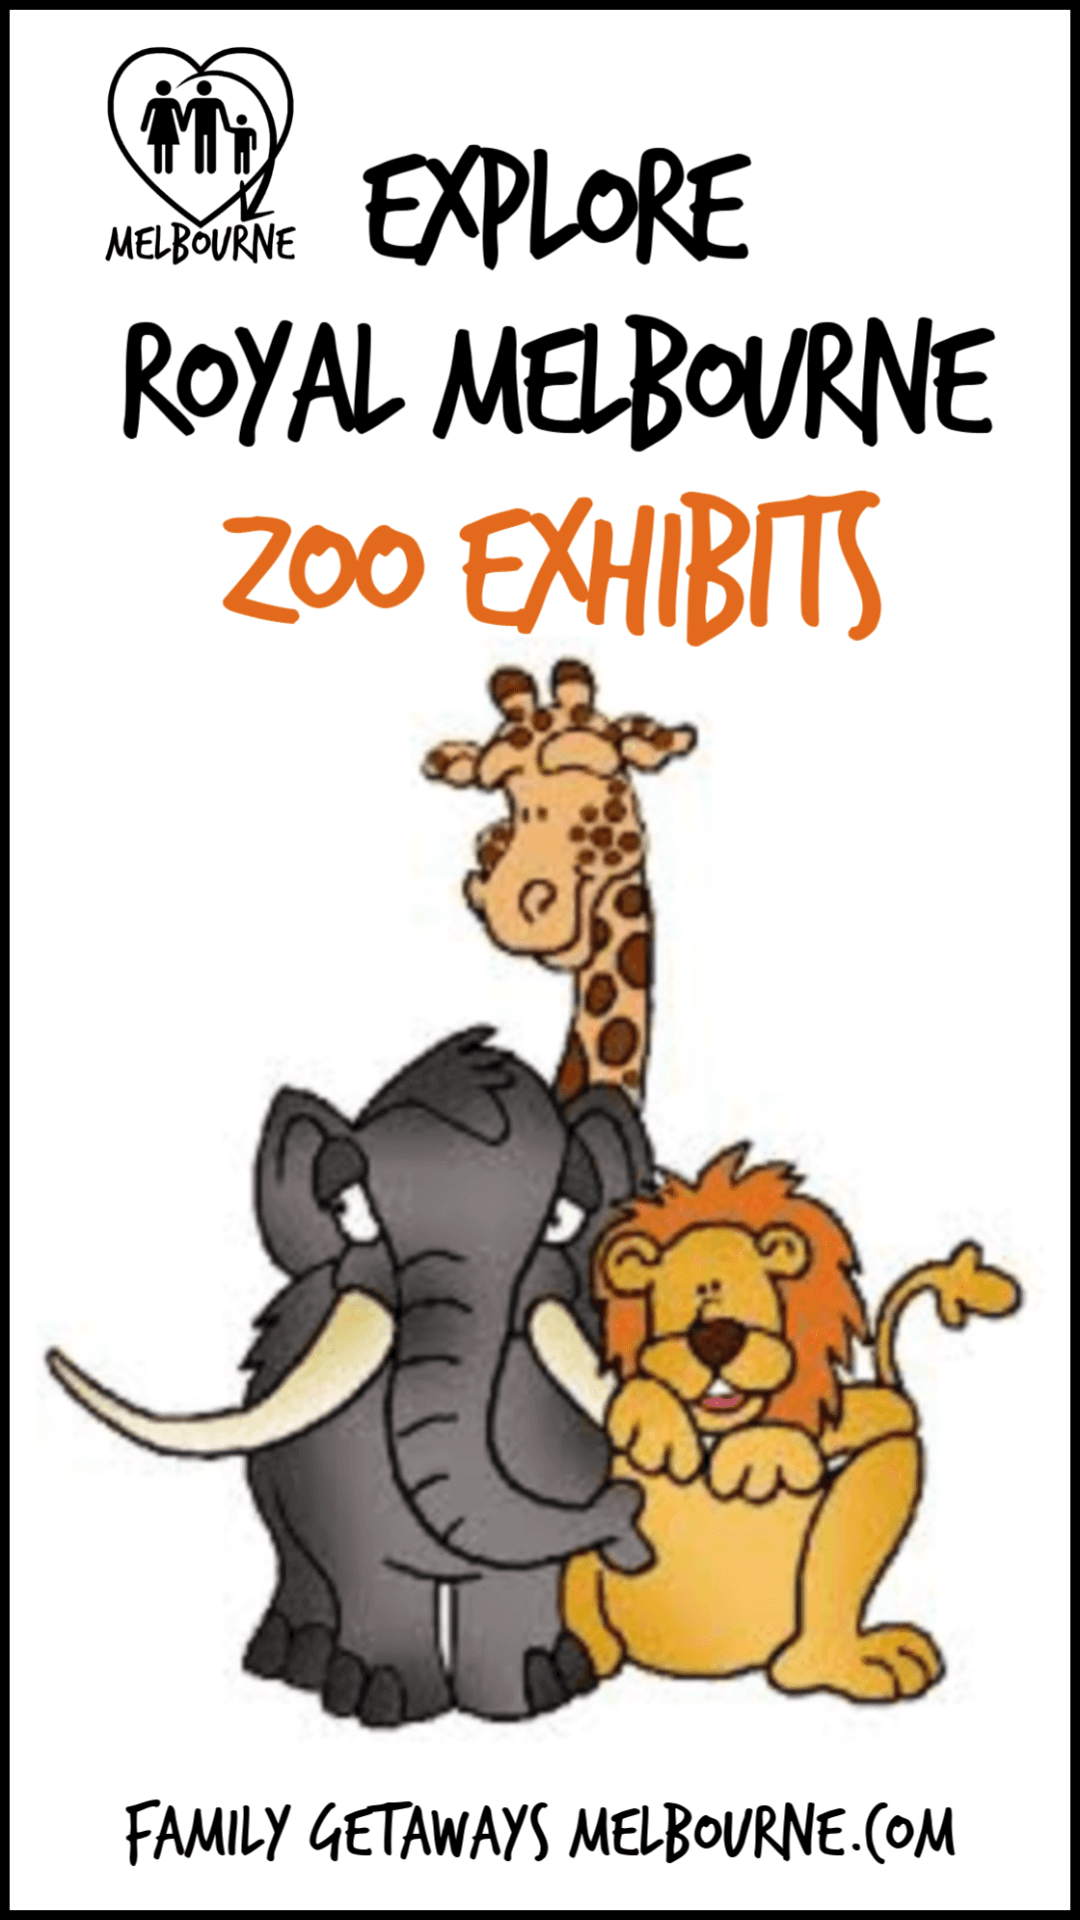 use this image to pin to Pinterest and share information on Melbourne's unique zoo exhibits